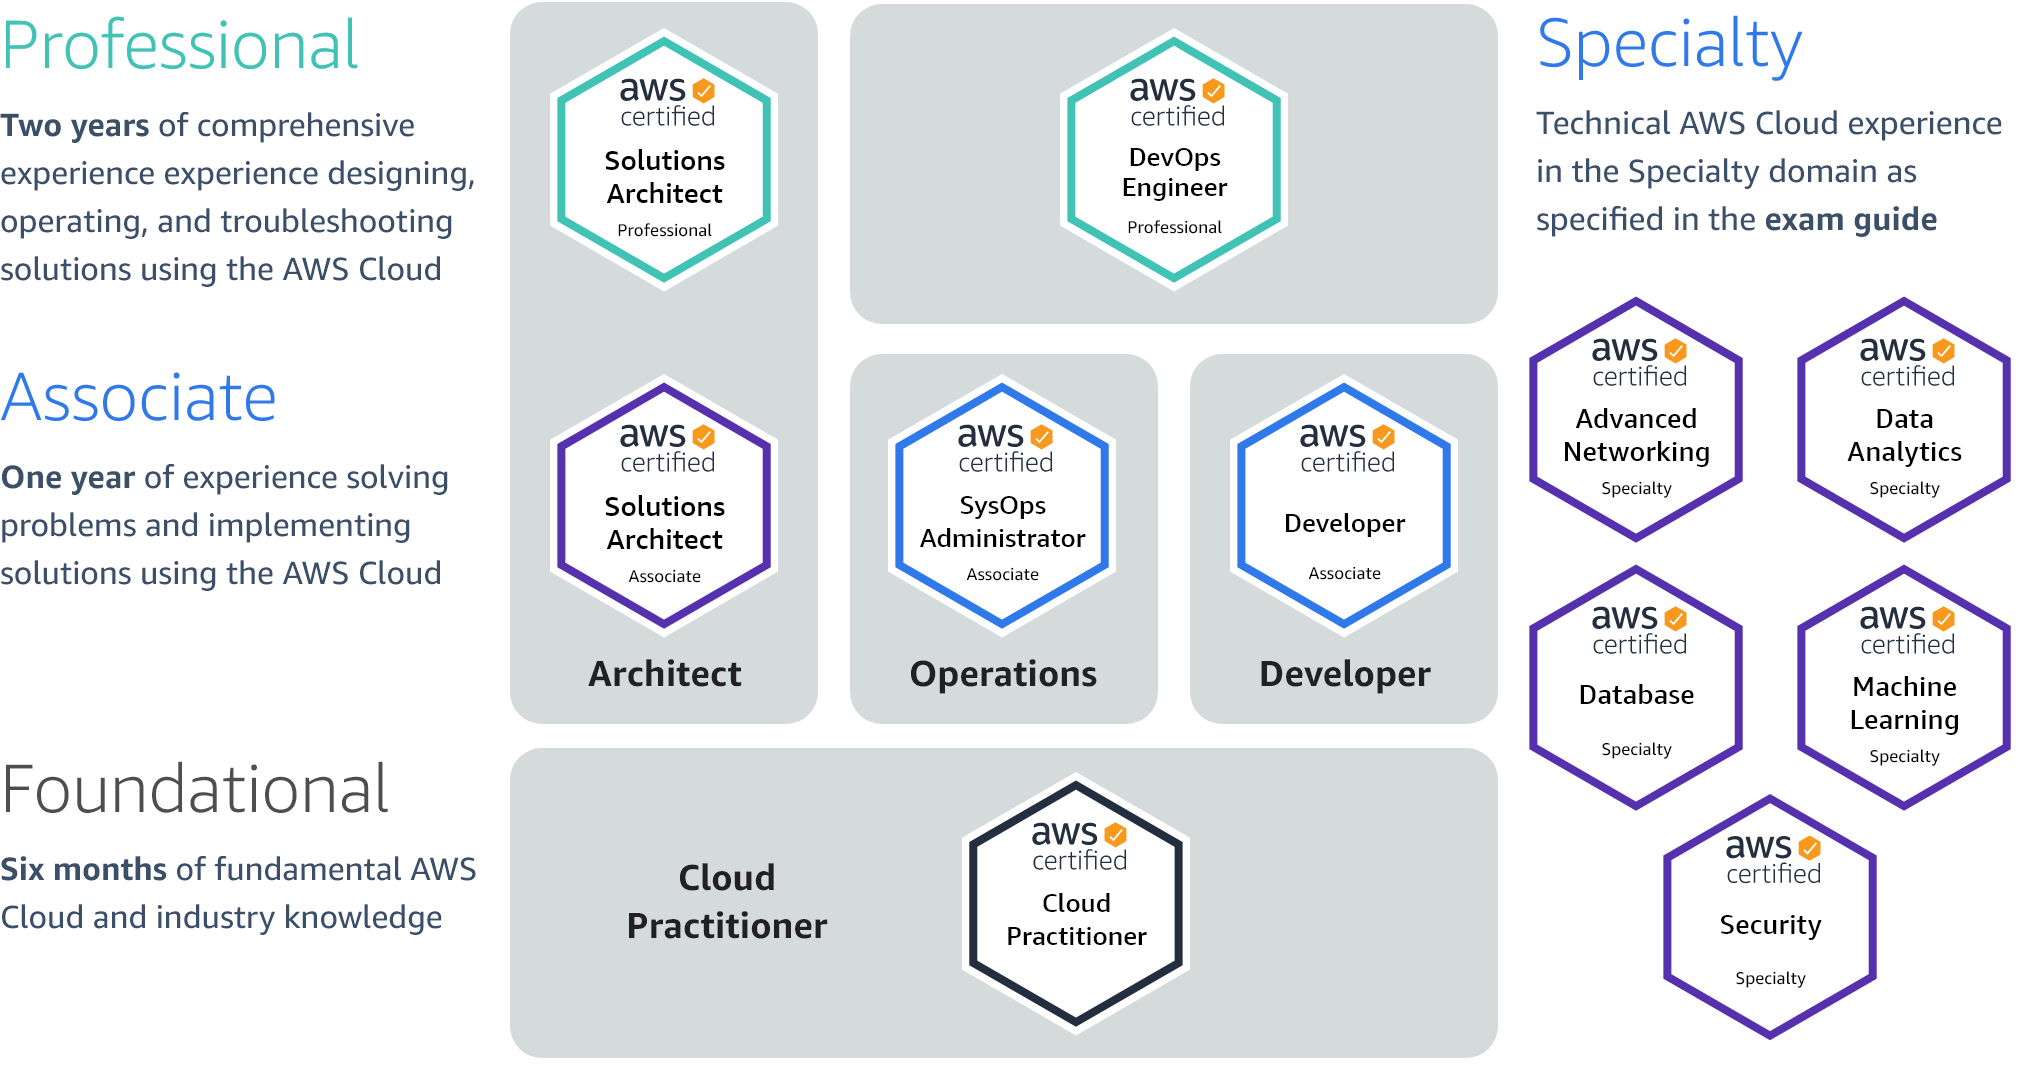 Available AWS Certifications